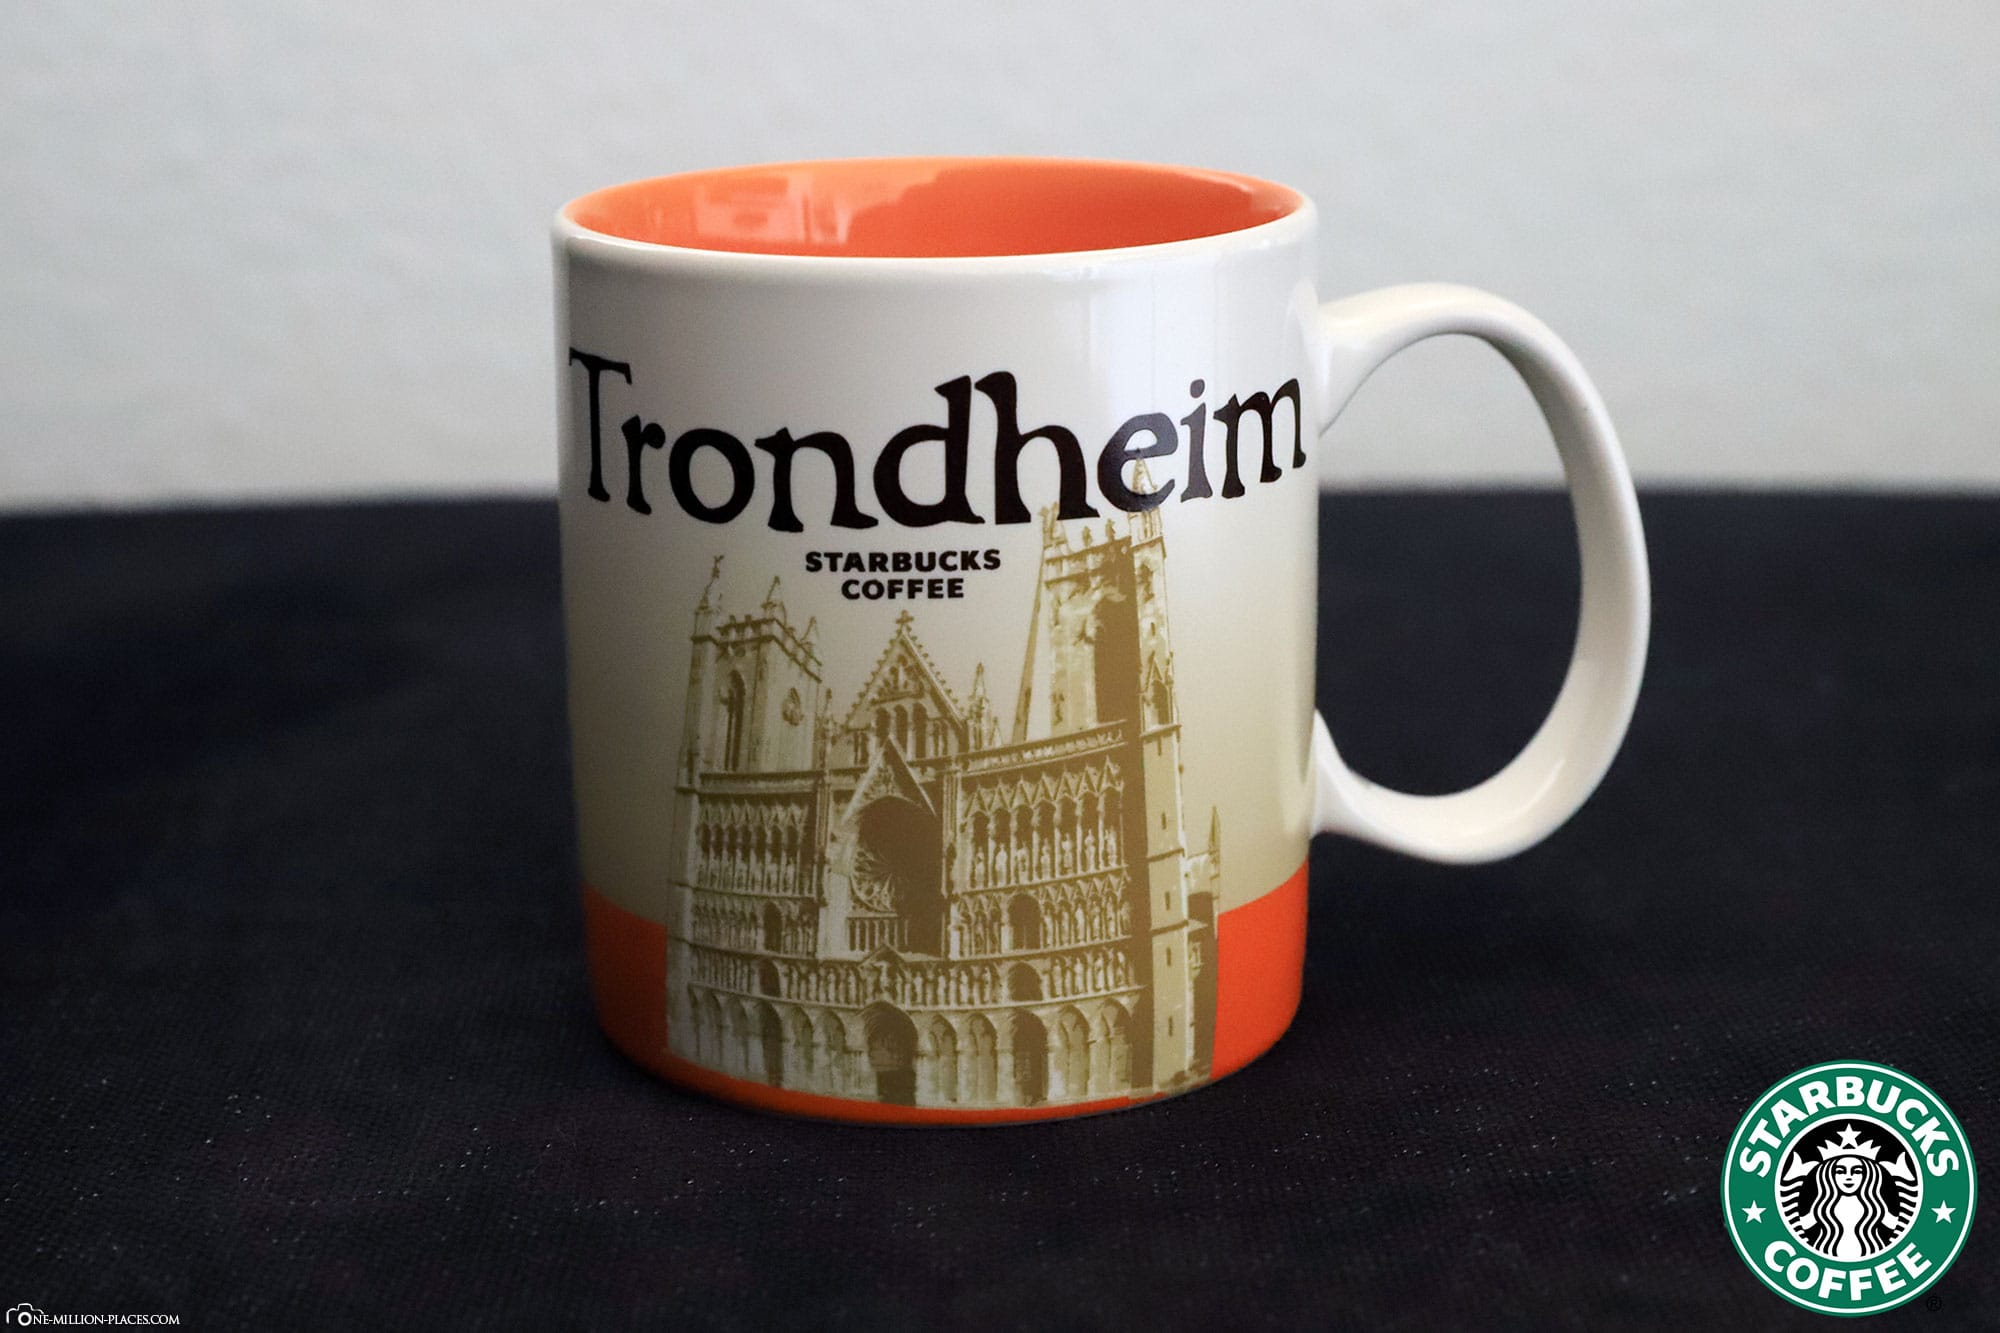 Trondheim, Starbucks Tasse, Global Icon Serie, City Mugs, Sammlung, Norwegen, Reisebericht